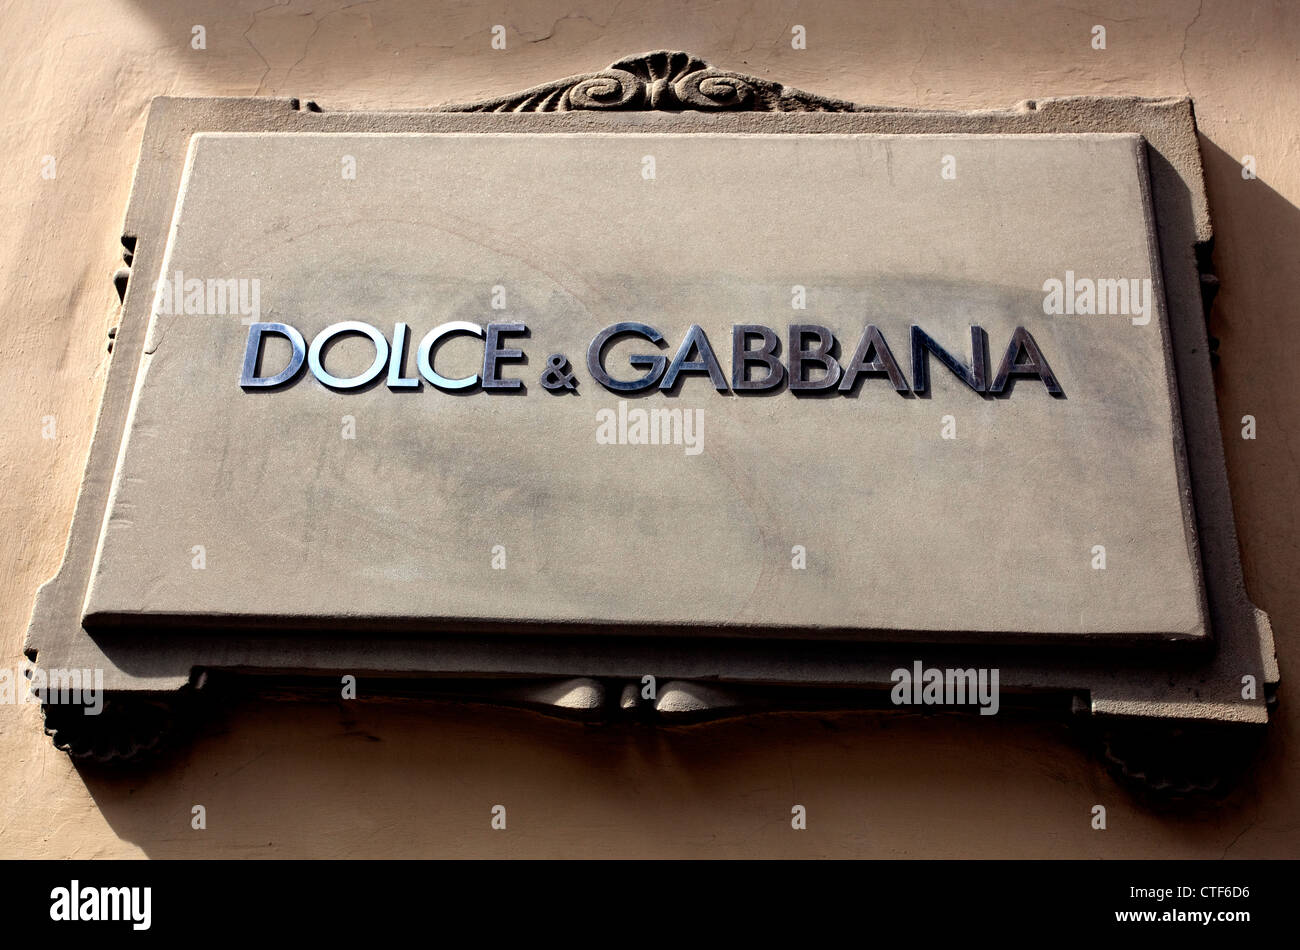 Sign on Dolce & Gabbana fashion store in Central Florence, Italy - Stock Image